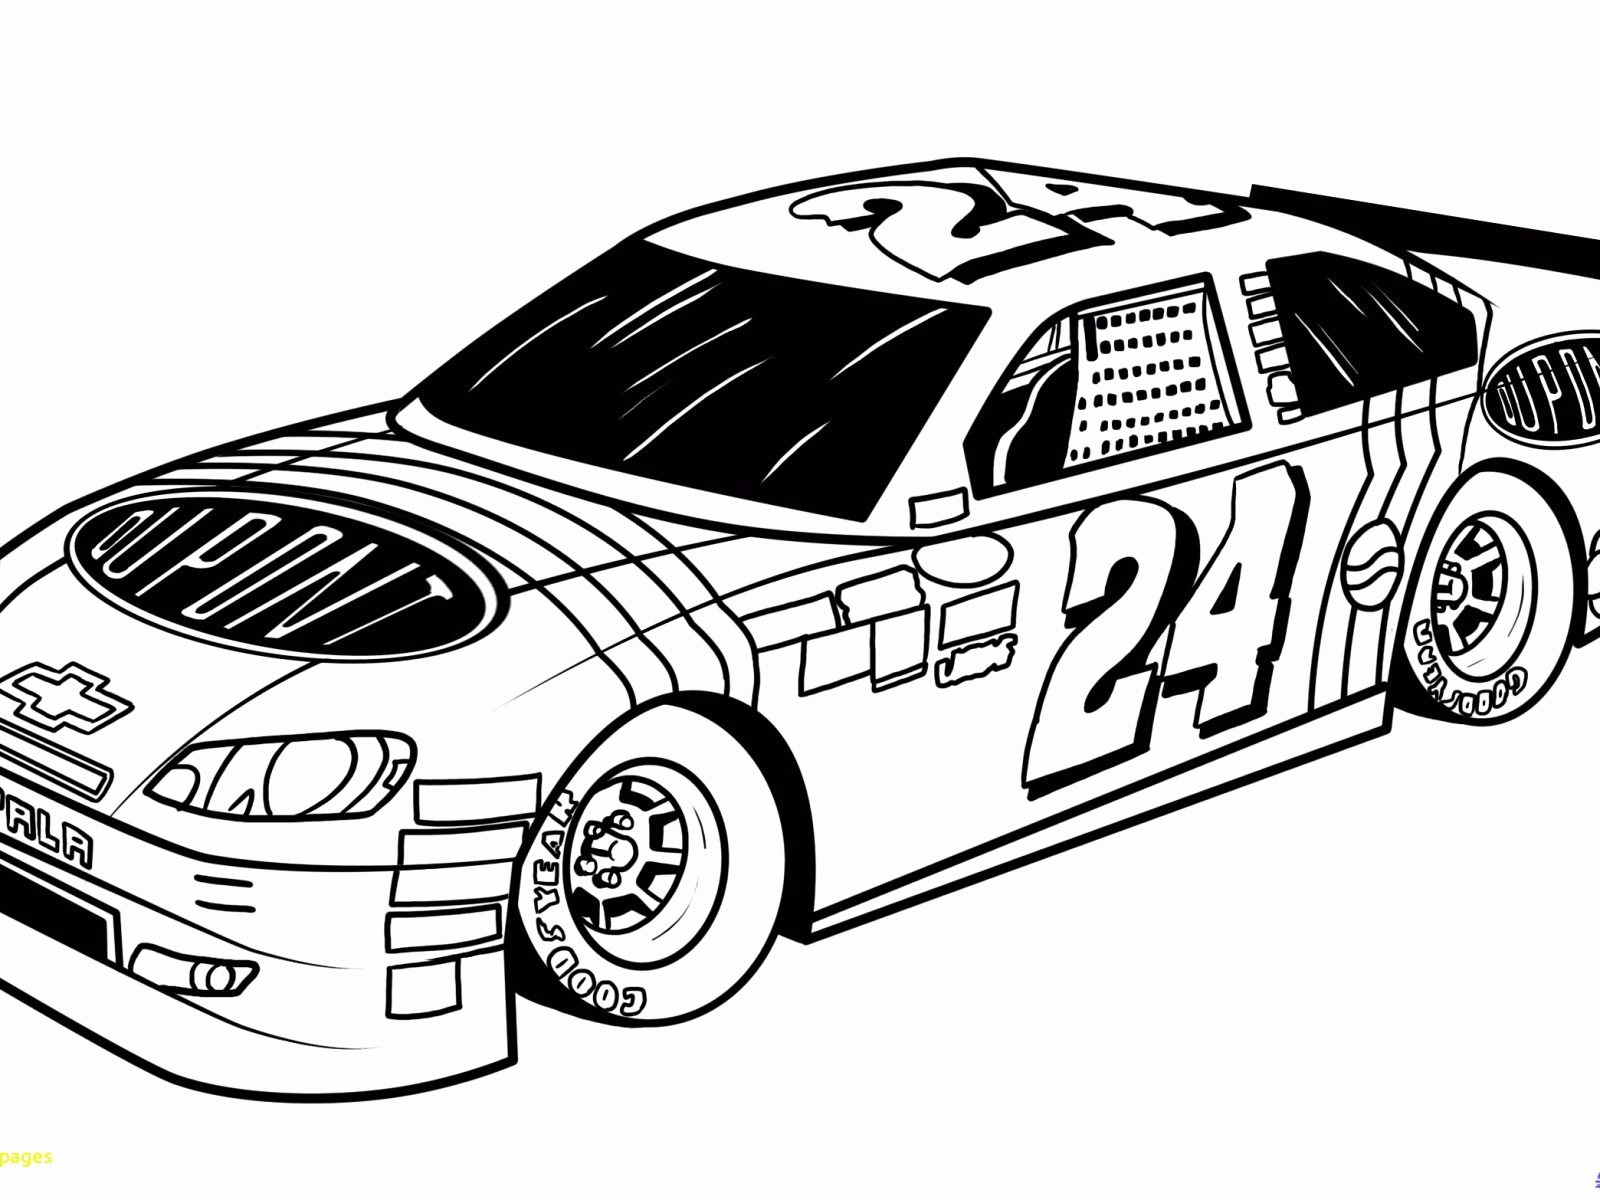 1600x1200 Coloring Pages For Children Awesome Breathtaking Nascar Coloring